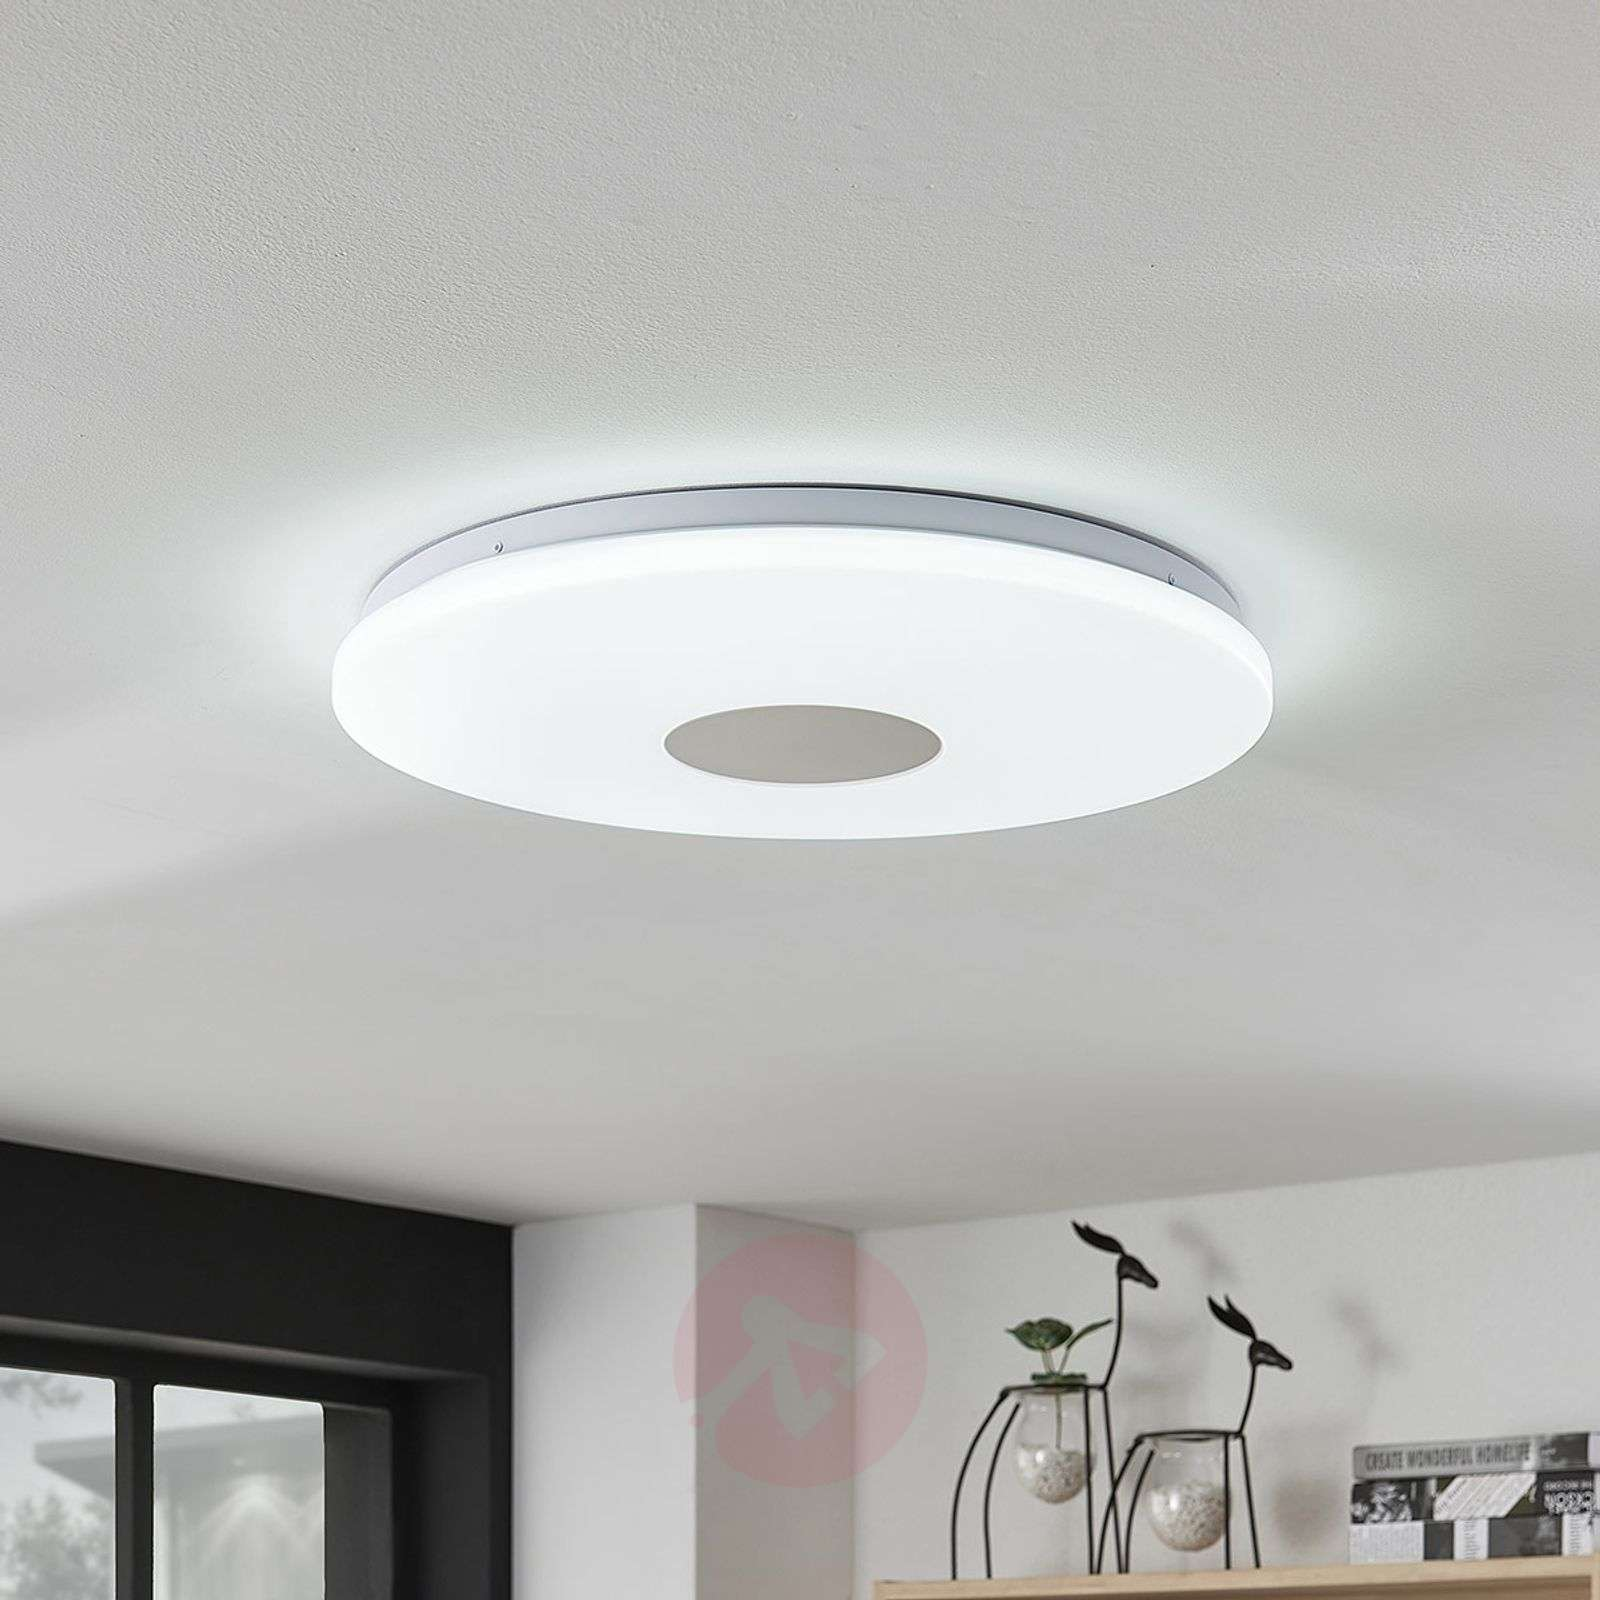 Plafonnier LED fonctionnel Renee, 25 W-9634002-014